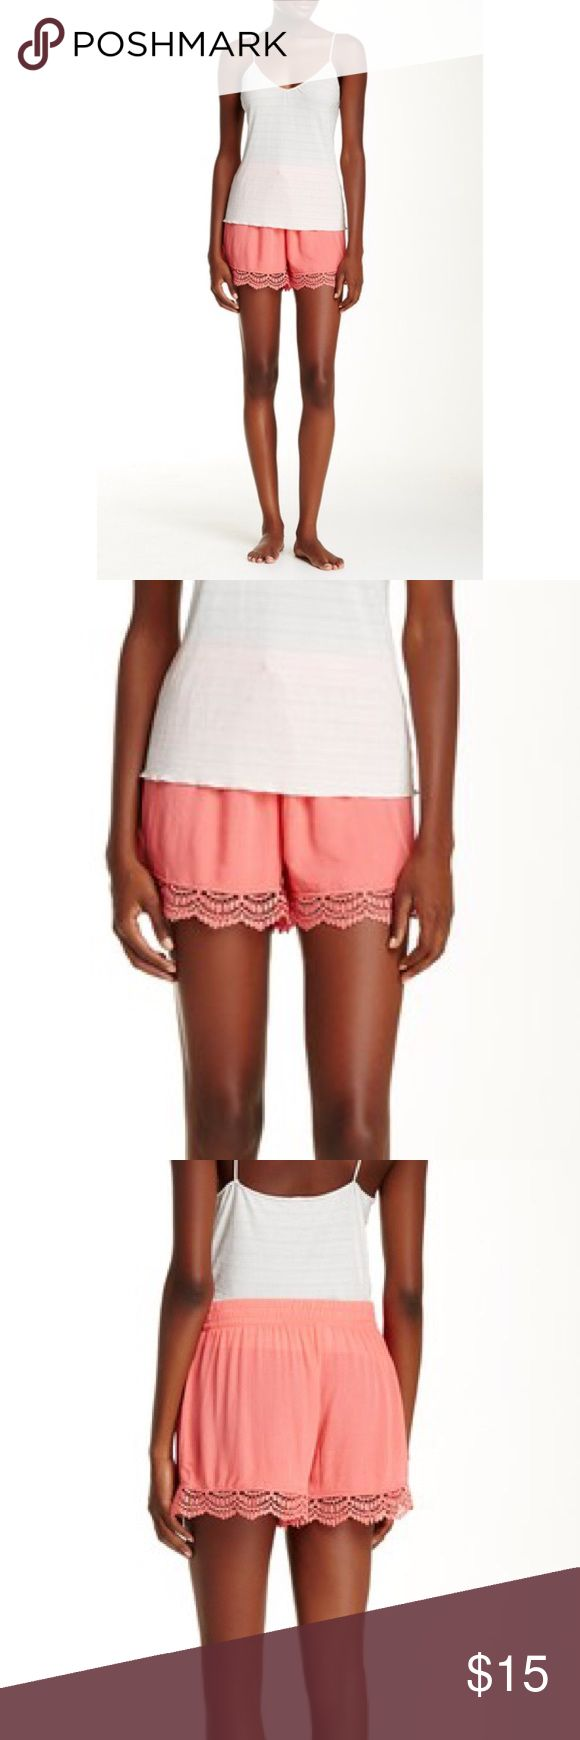 Woven Crochet Short Coral Nordstrom Woven short with crochet bottom. Coral colored. Brand new with tags. Shorts